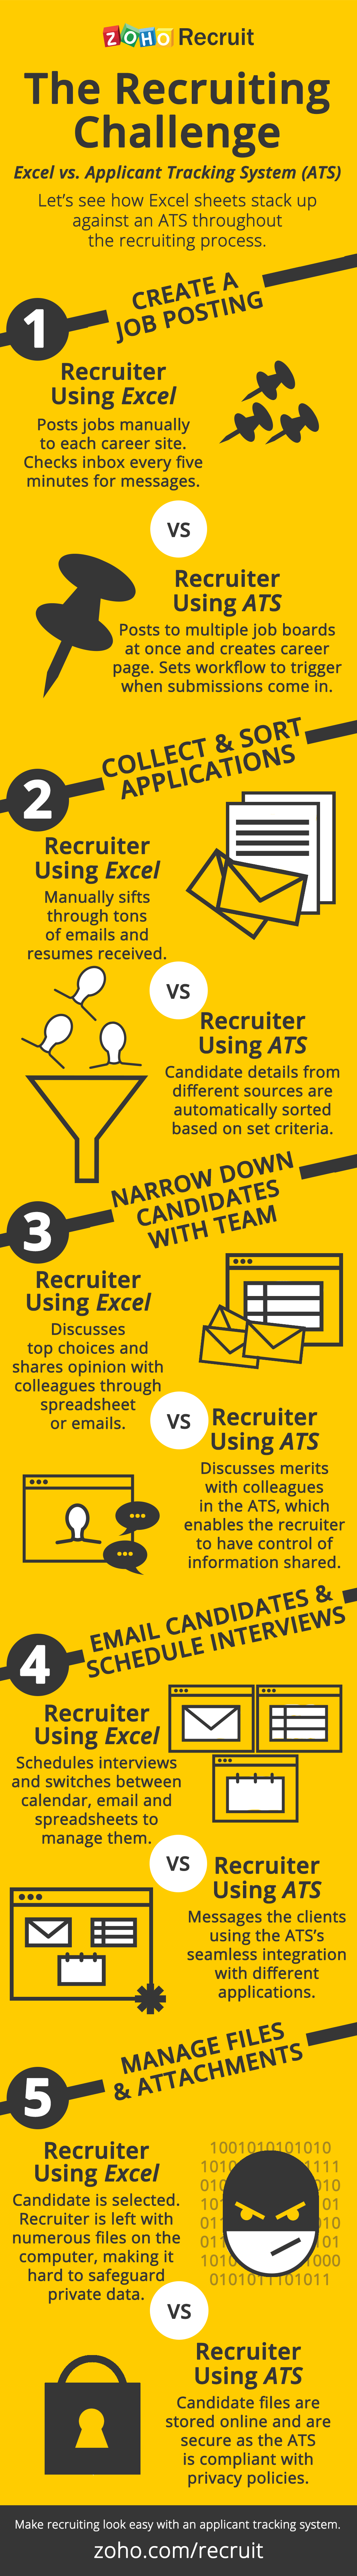 ATS vs Excel Infographic